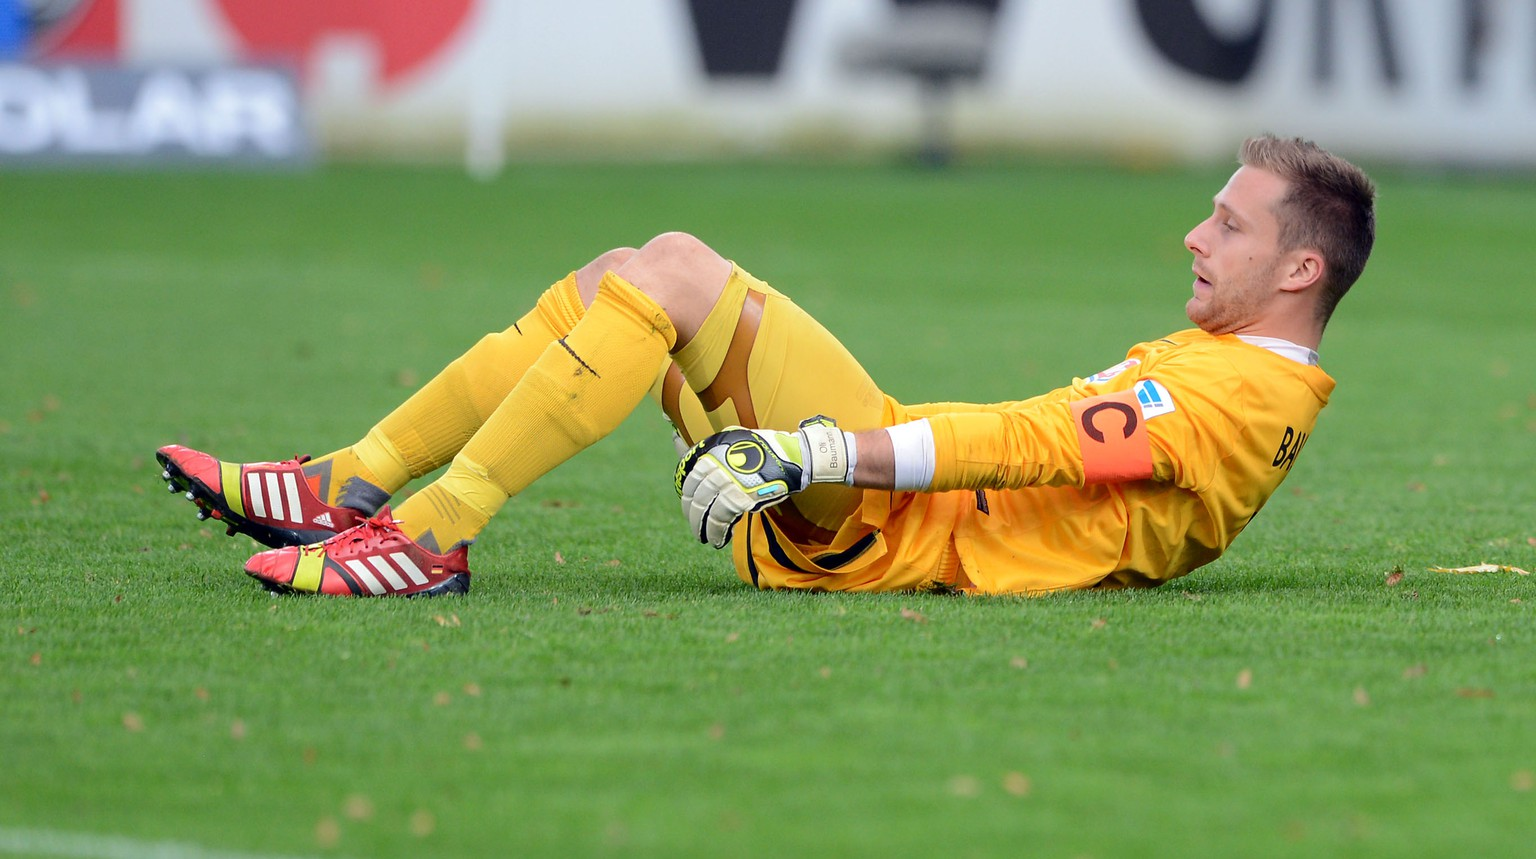 FREIBURG, GERMANY - OCTOBER 27:  Goalkeeper Oliver Baumann of Freiburg looksdejected after his second mistake during the Bundesliga match between SC Freiburg and Hamburger SV at Mage Solar Stadium on October 27, 2013 in Freiburg, Germany.  (Photo by Michael Kienzler/Bongarts/Getty Images)